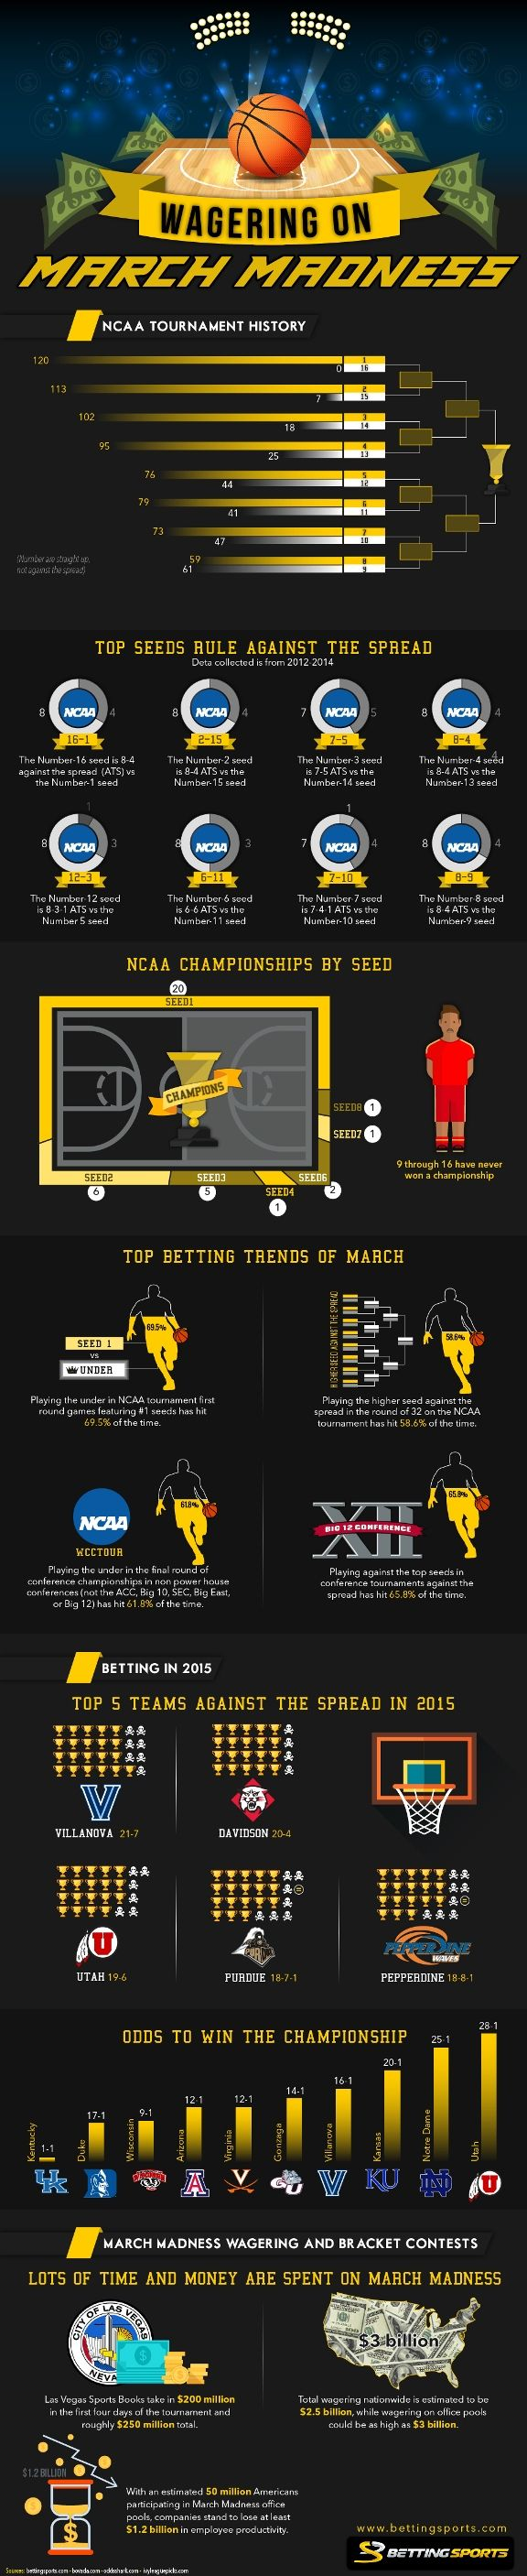 Tips for Wagering on March Madness - Do you fancy an infographic? There are a lot of them online, but if you want your own please visit http://www.linfografico.com/prezzi/ Online girano molte infografiche, se ne vuoi realizzare una tutta tua visita http://www.linfografico.com/prezzi/